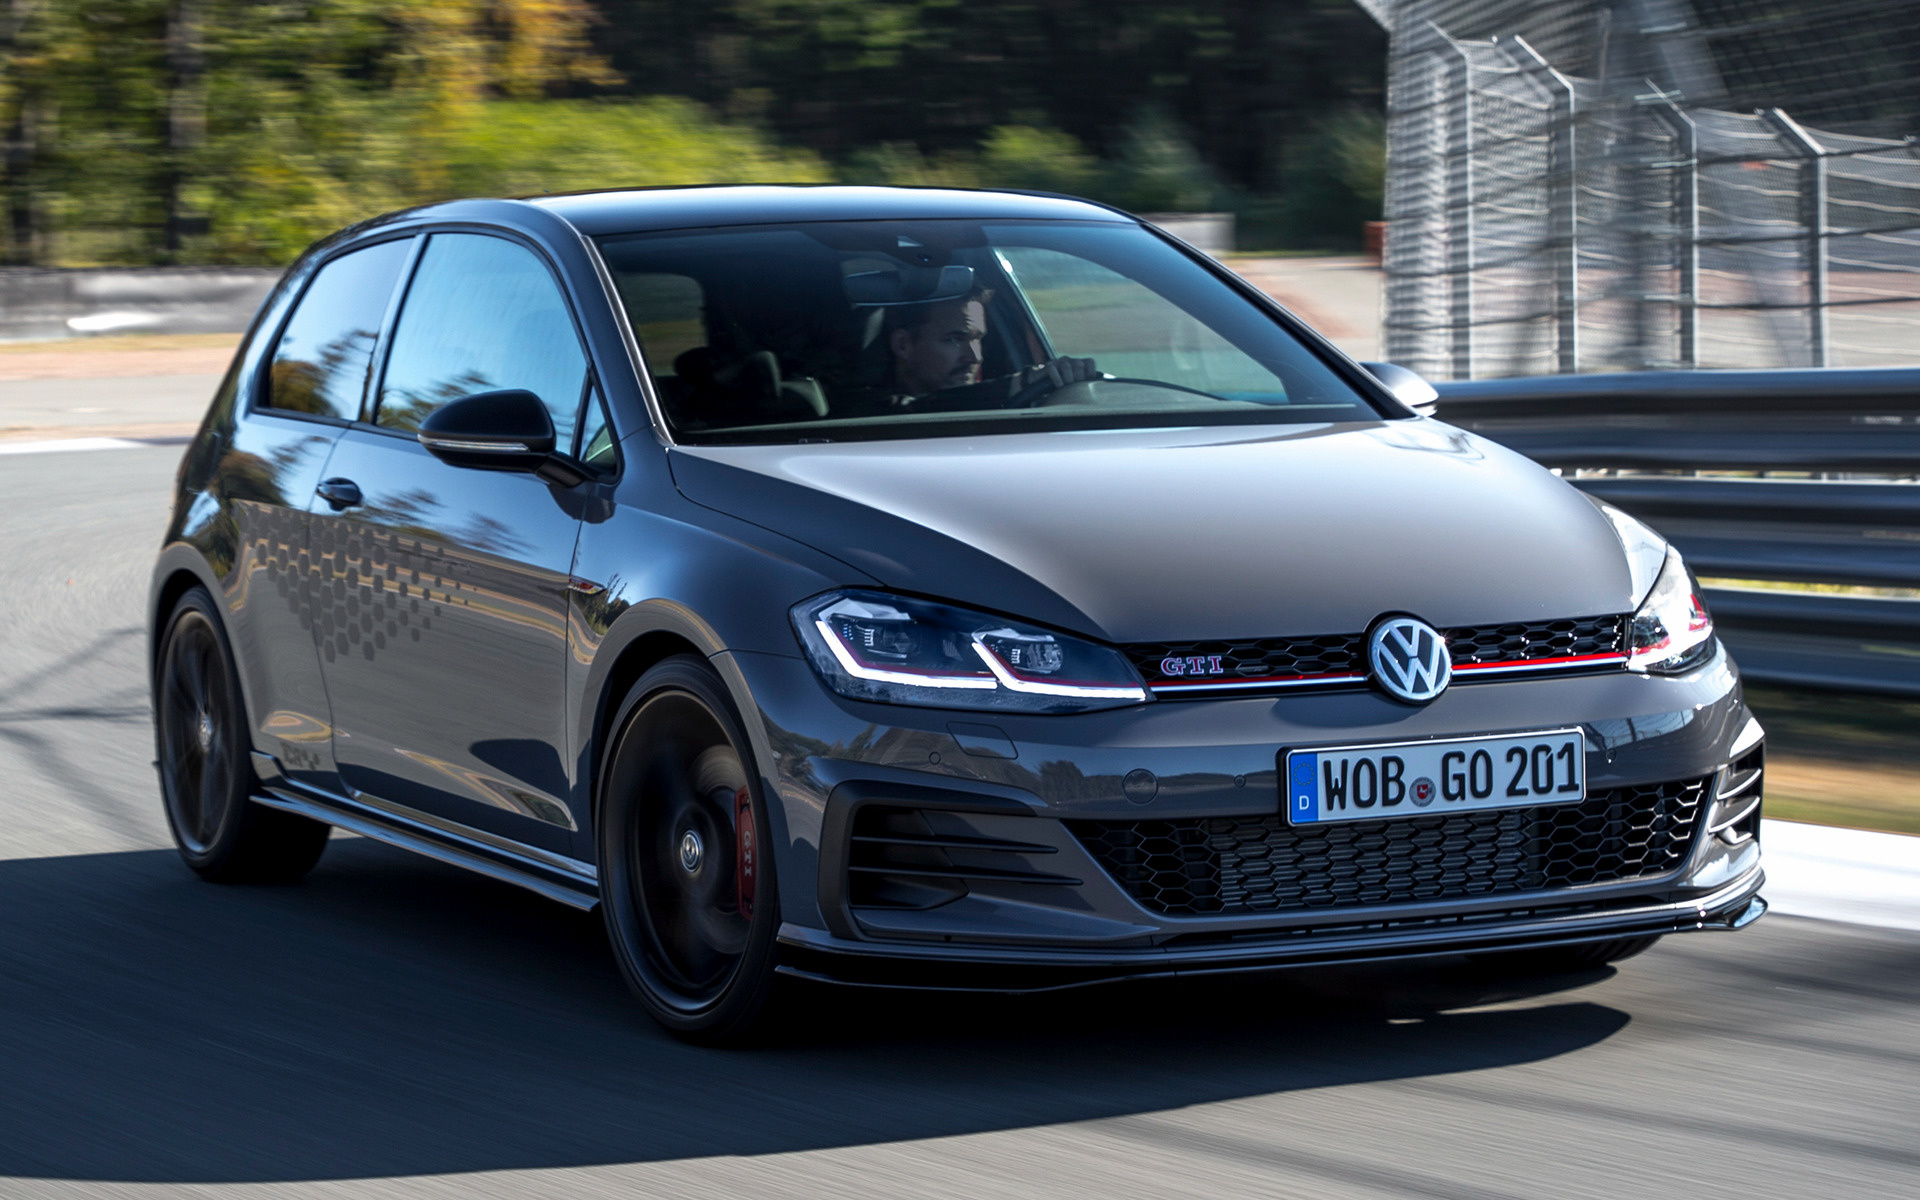 2019 Volkswagen Golf GTI TCR [3-door] - Wallpapers and HD Images | Car Pixel